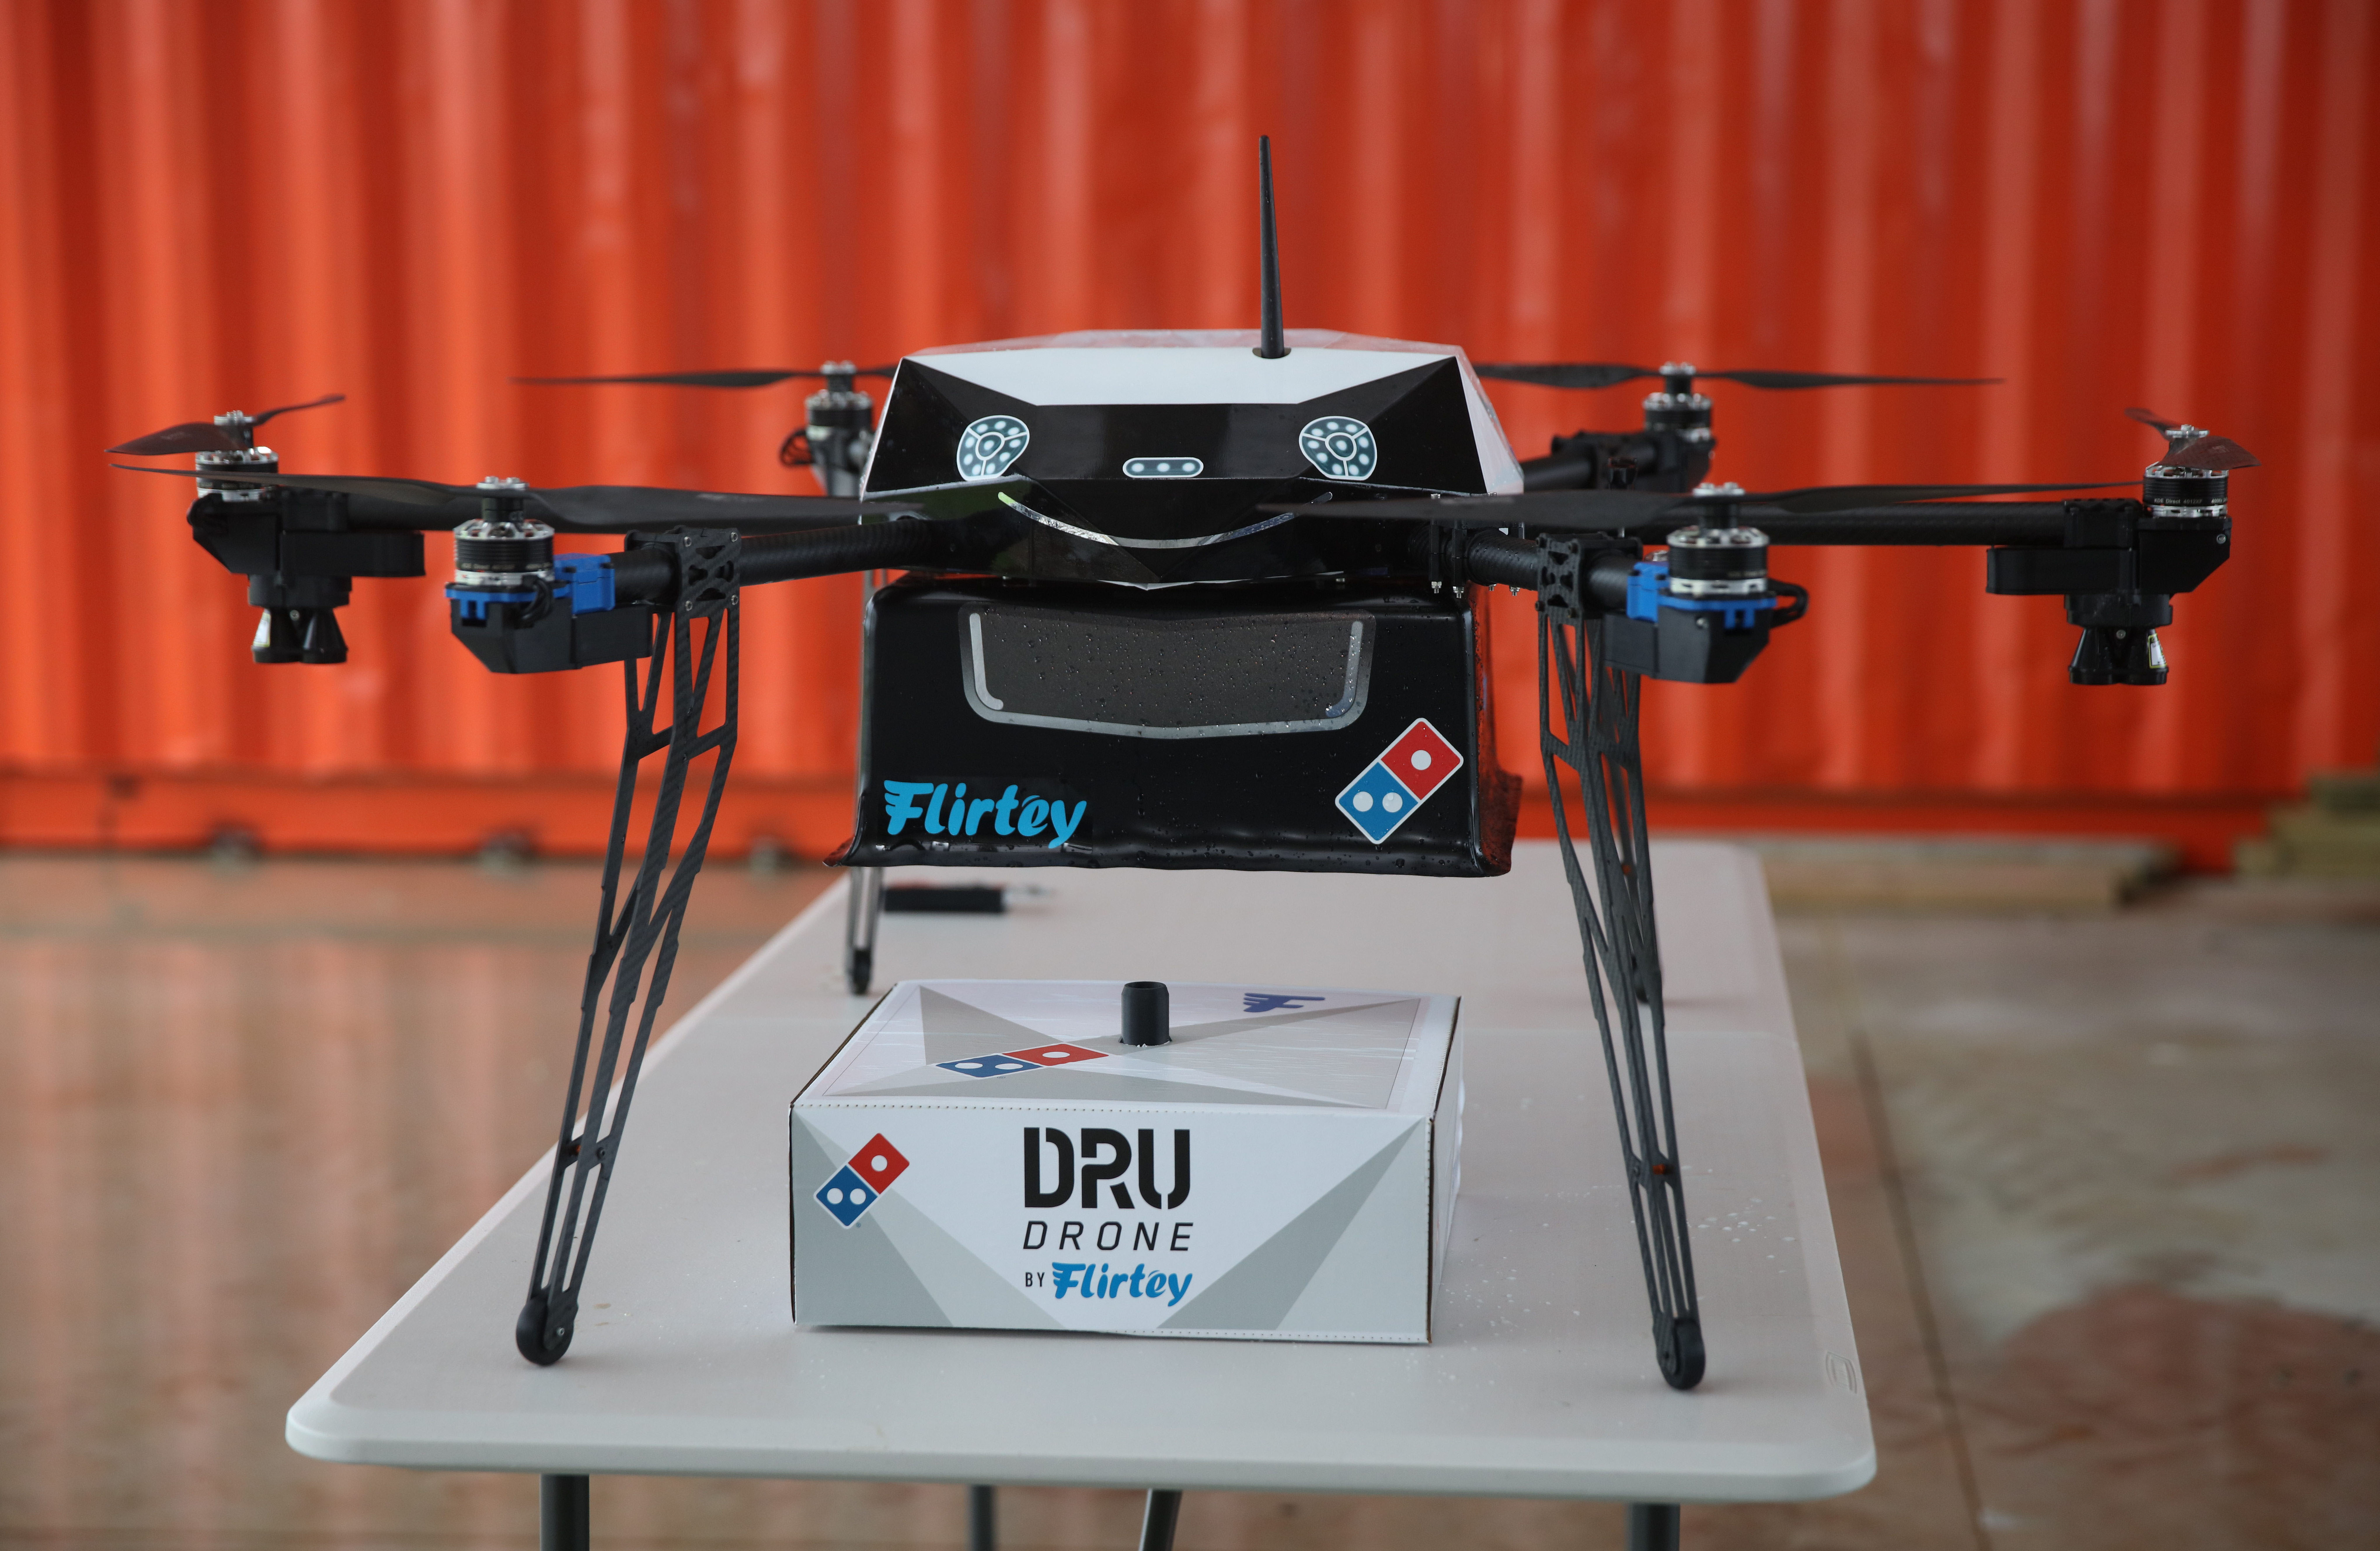 Domino's Pizza has its own airborne delivery programme that it is trialling.